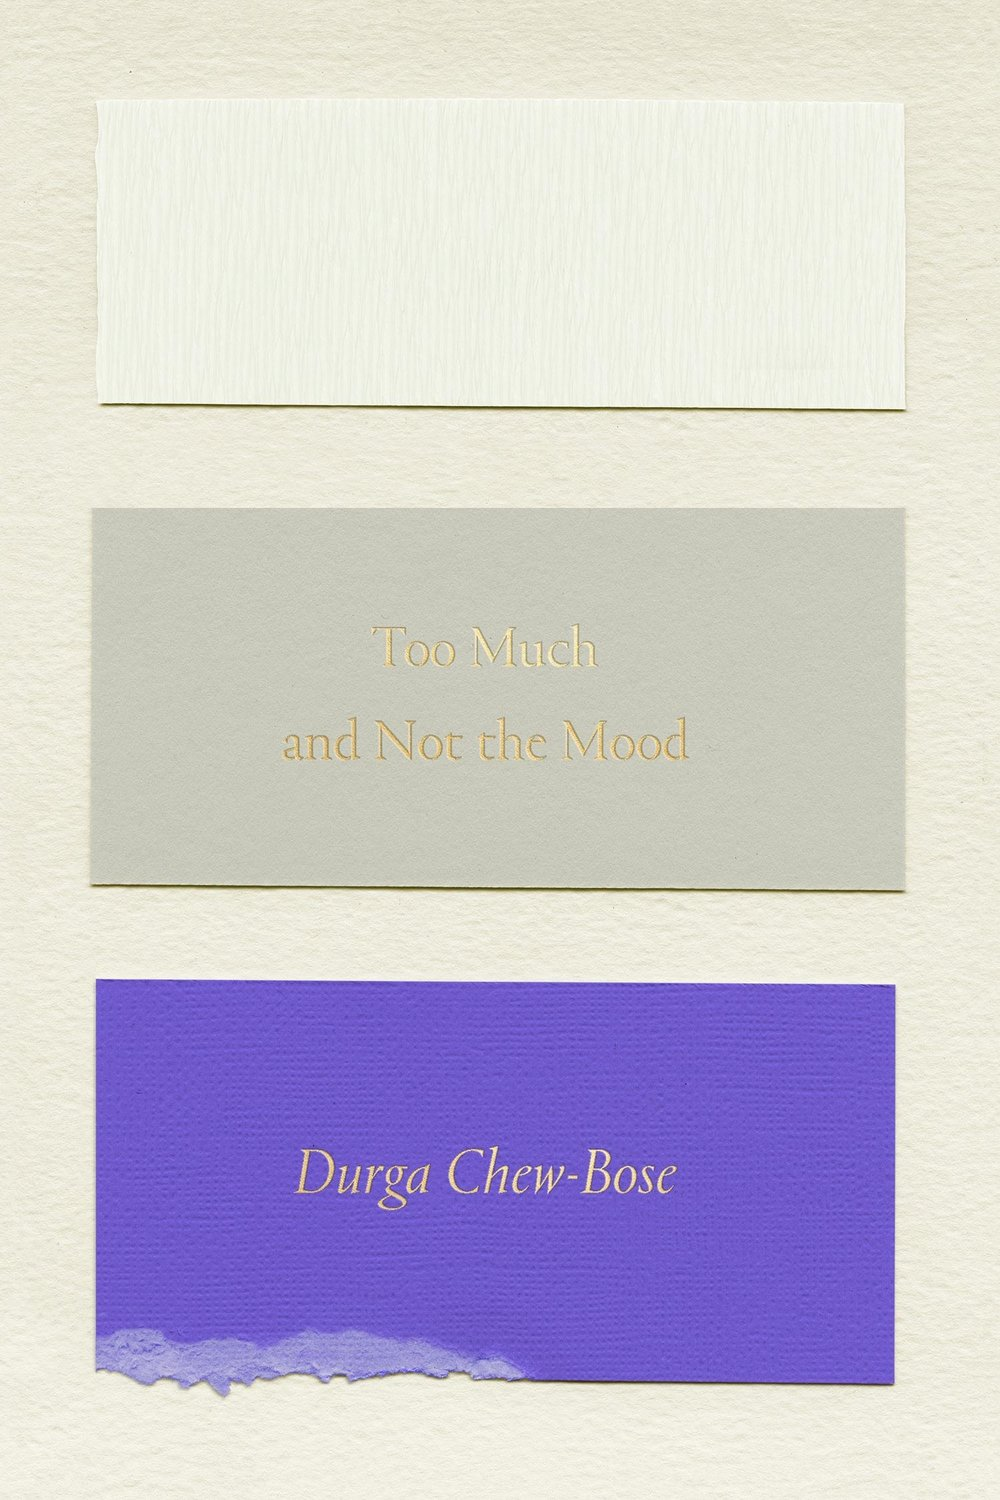 Durga Chew-Bose,  Too Much and Not the Mood